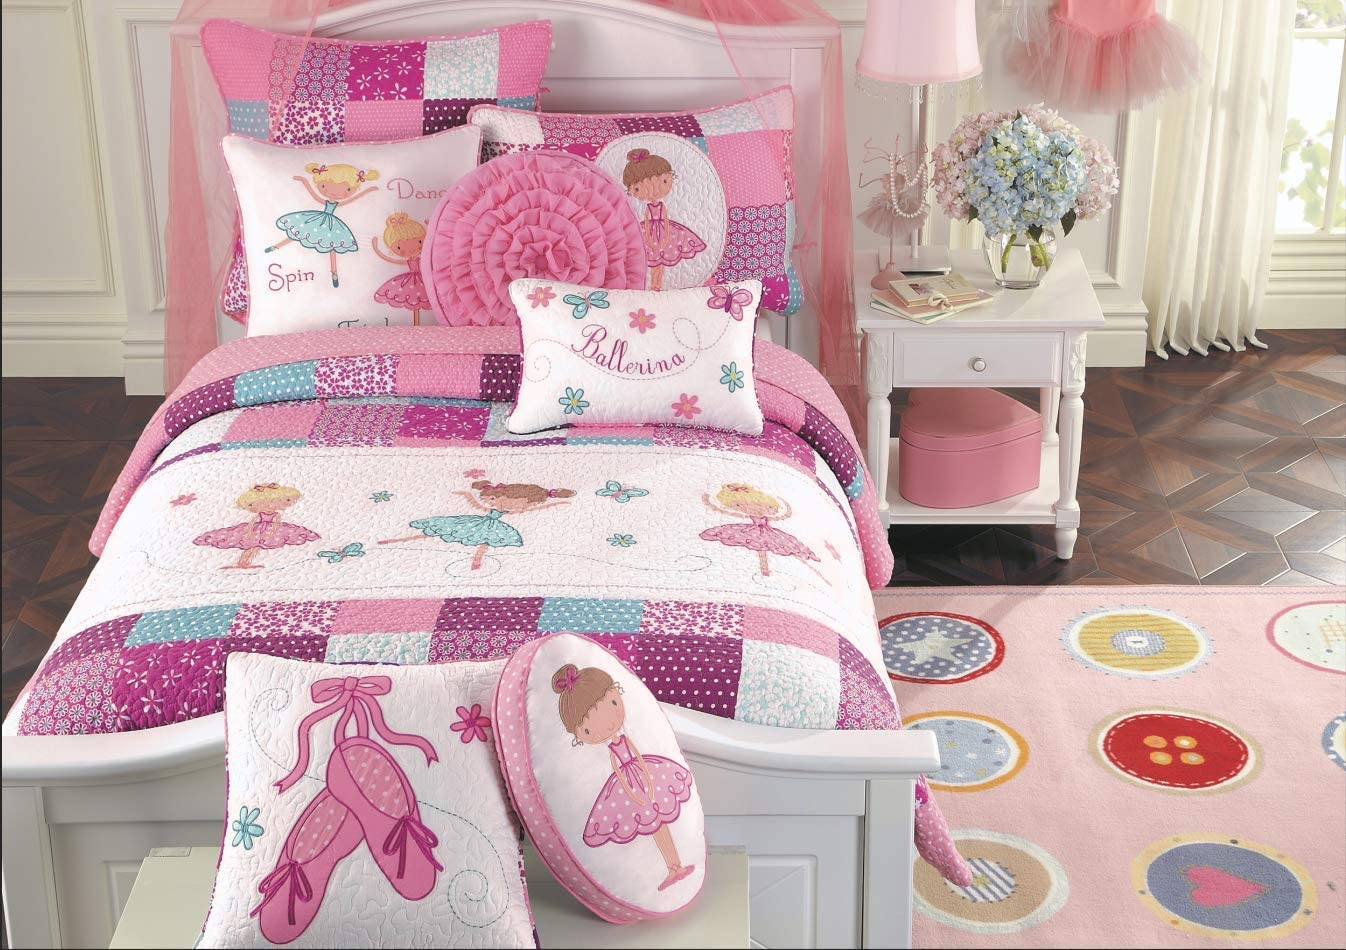 Cozy Line Home Fashions Ballerina Dance Princess Bedding Quilt Set, Embroidered Pattern Patchwork 100% Cotton Bedspread Coverlet Set (Pink Embroidered, Queen - 3 Piece)